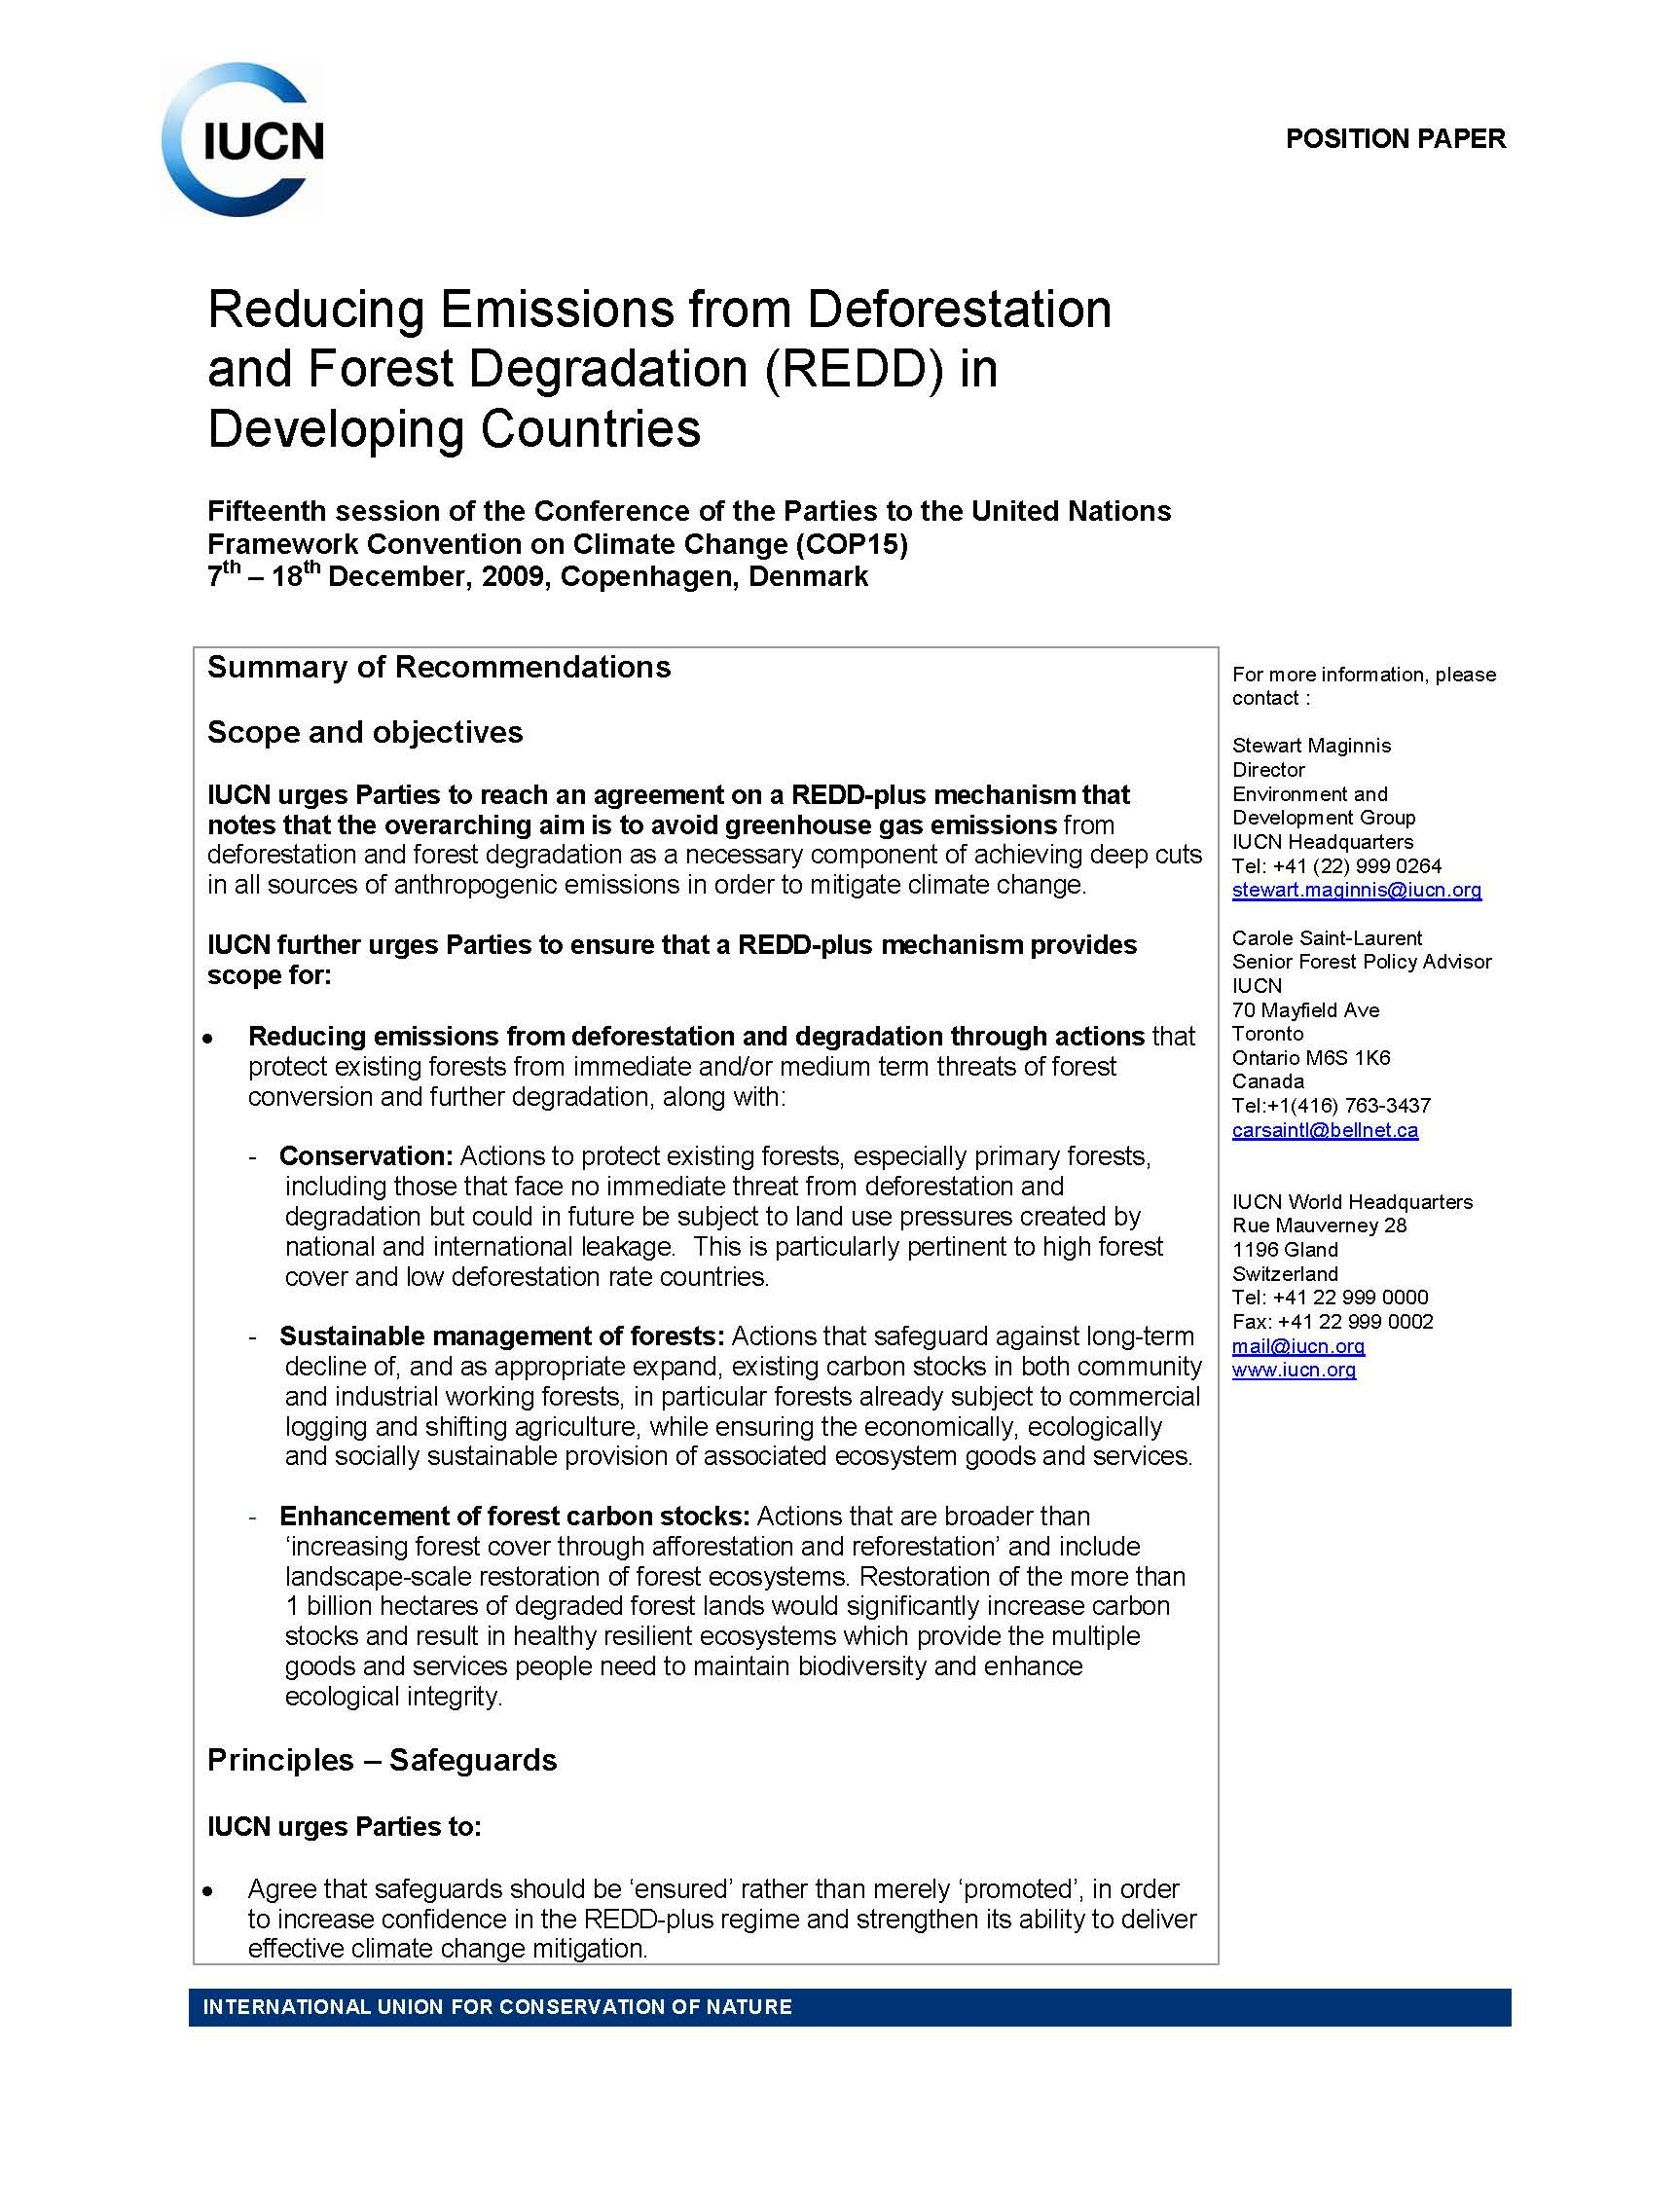 essay on deforestation persuasive speech on animal testing essay  how to write a model un position paper essay on the value of life deforestation